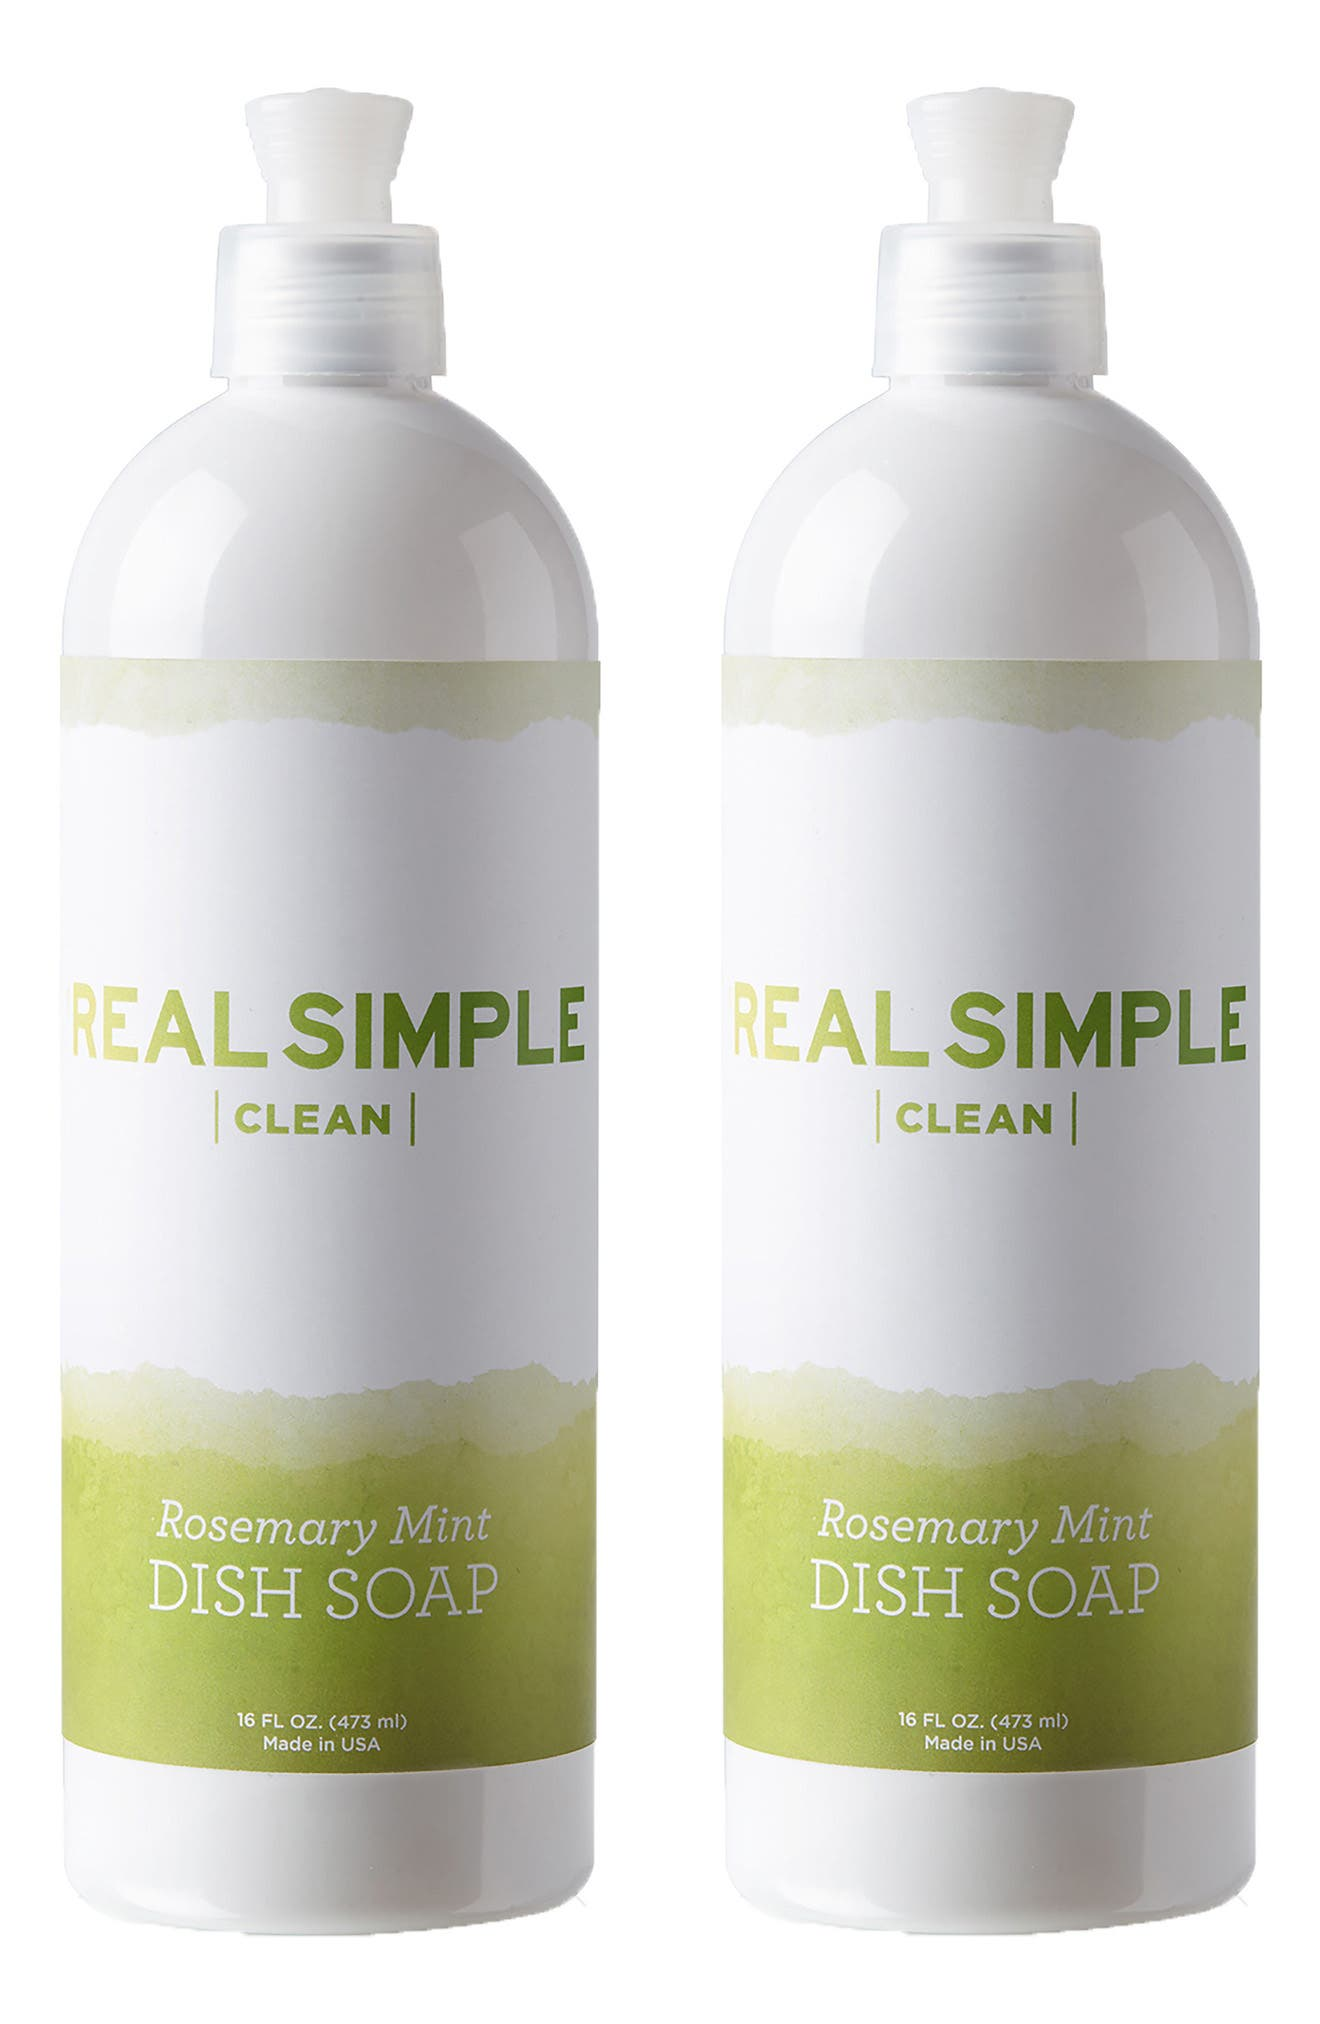 Alternate Image 1 Selected - Real Simple 2-Pack Dish Soap